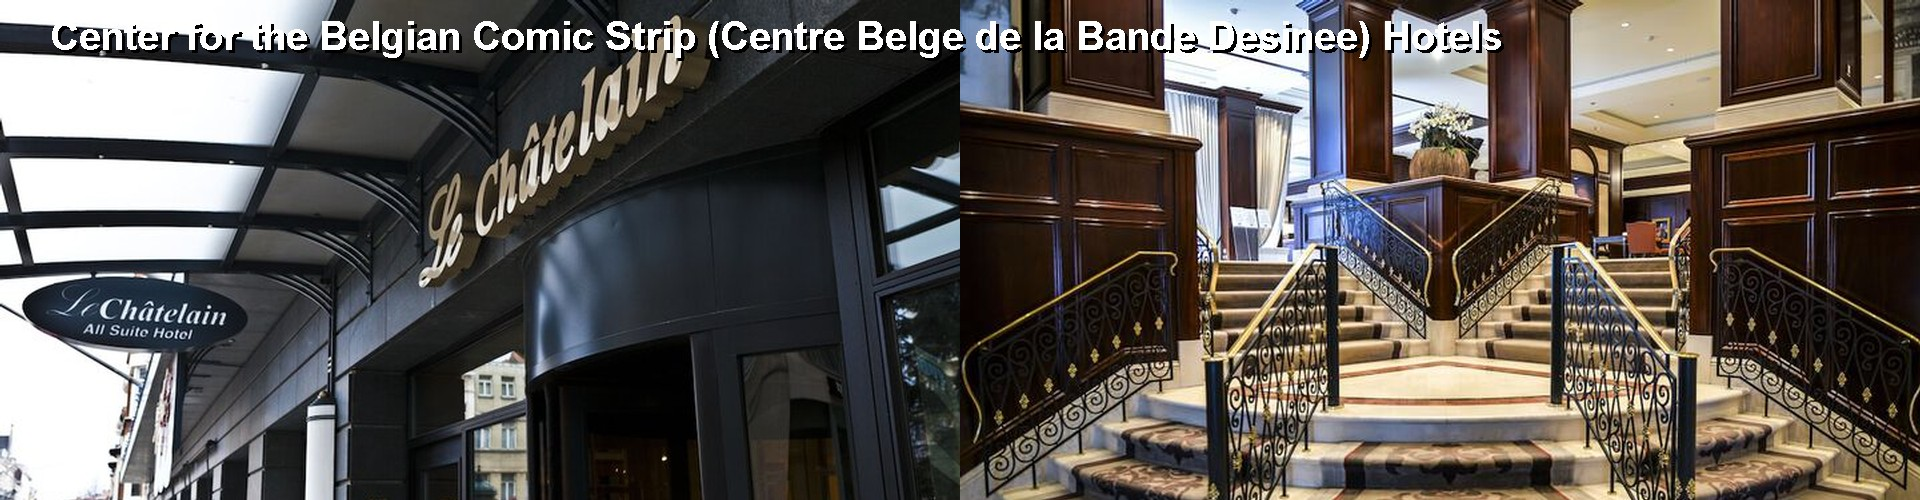 5 Best Hotels near Center for the Belgian Comic Strip (Centre Belge de la Bande Desinee)